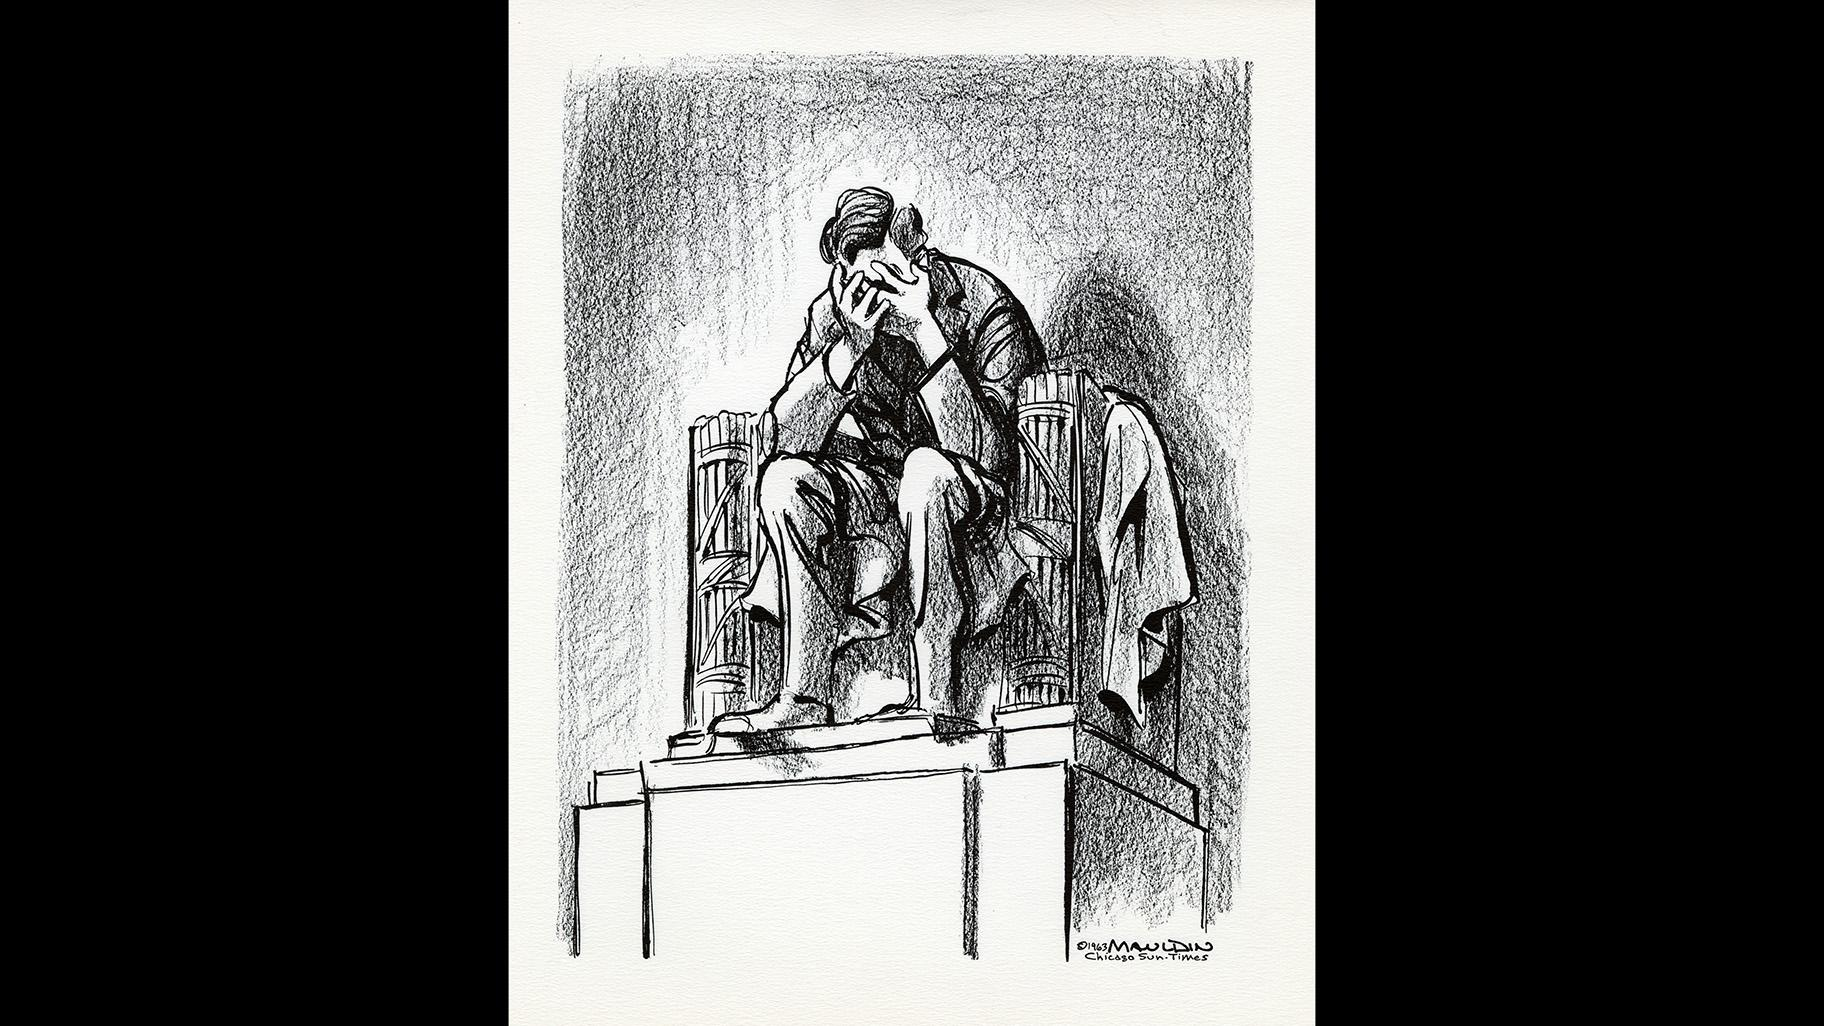 Grieving Lincoln: Chicago Sun-Times, 1963; in response to the JFK assassination. Copyright 1963 by Bill Mauldin. (Courtesy of Bill Mauldin Estate LLC)